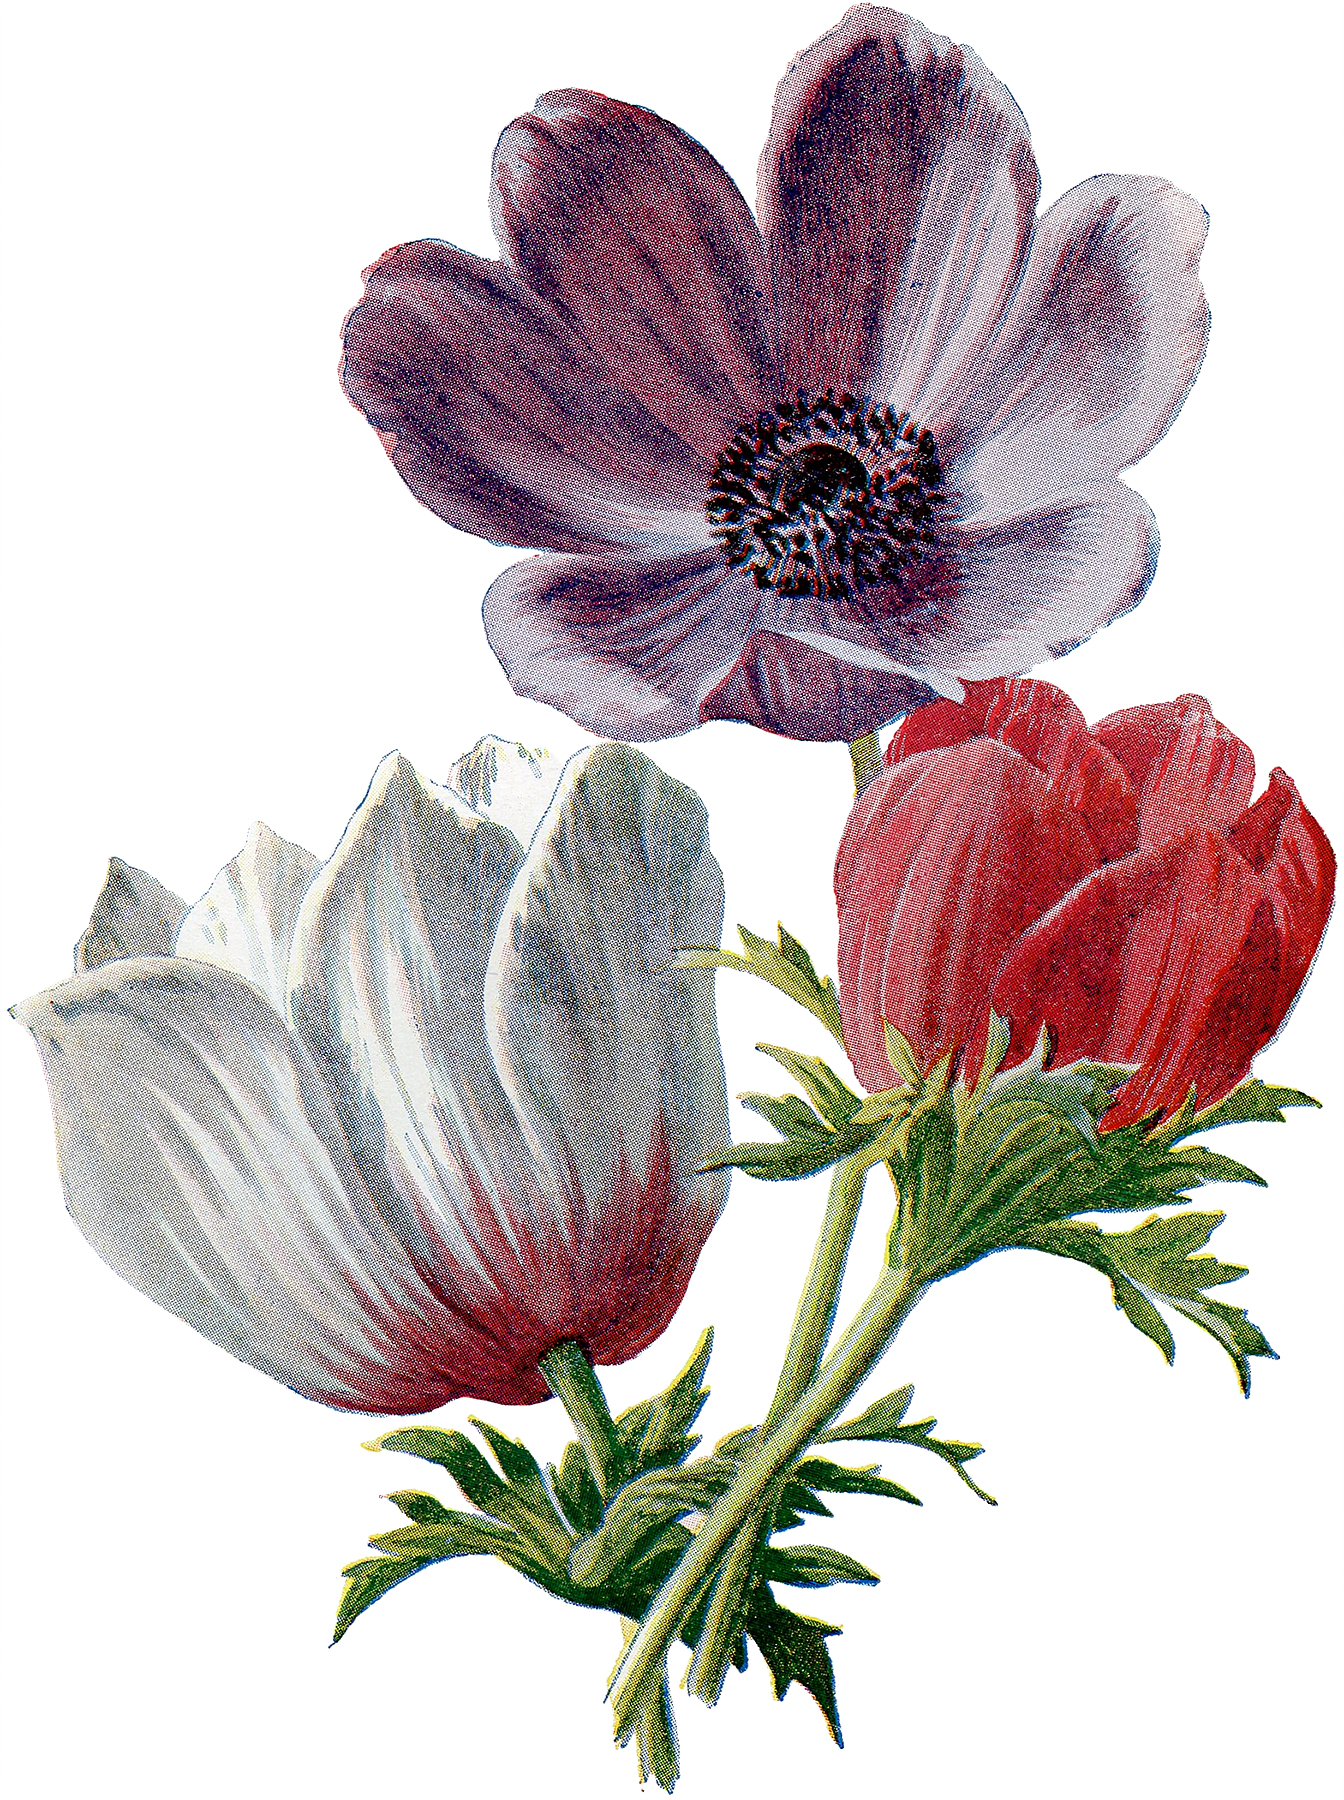 Vintage Lush Red and White Anemones Botanical Graphic!